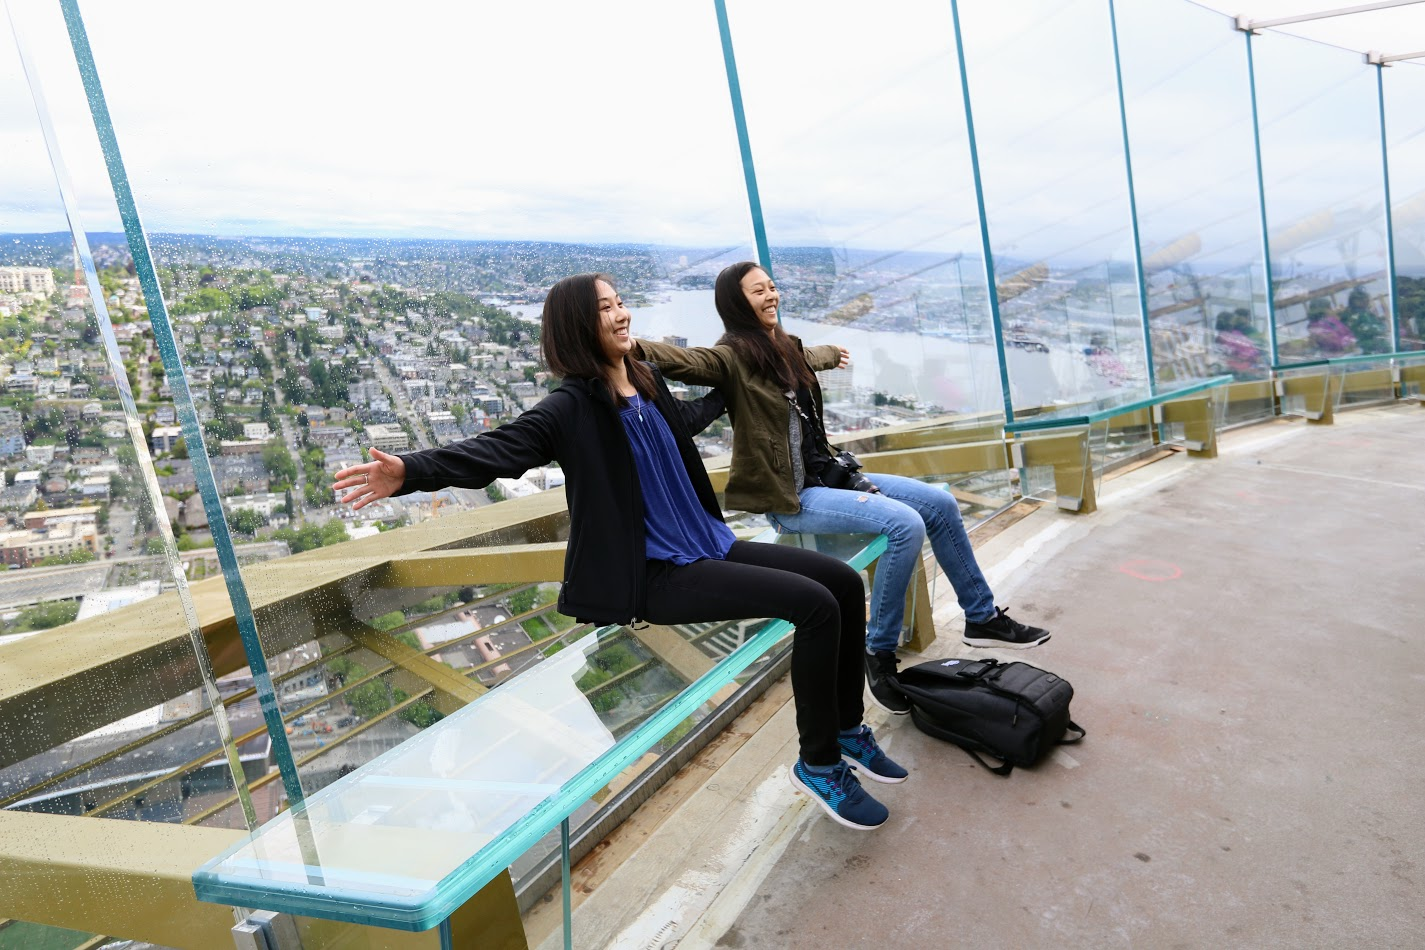 The new benches called &quot;Skyrisers&quot; are slanted back so you can sit back and take a selfie over the city. This is all part of the Space Needle's $100 million renovation. (Photo courtesy the Space Needle){&amp;nbsp;}<p></p>